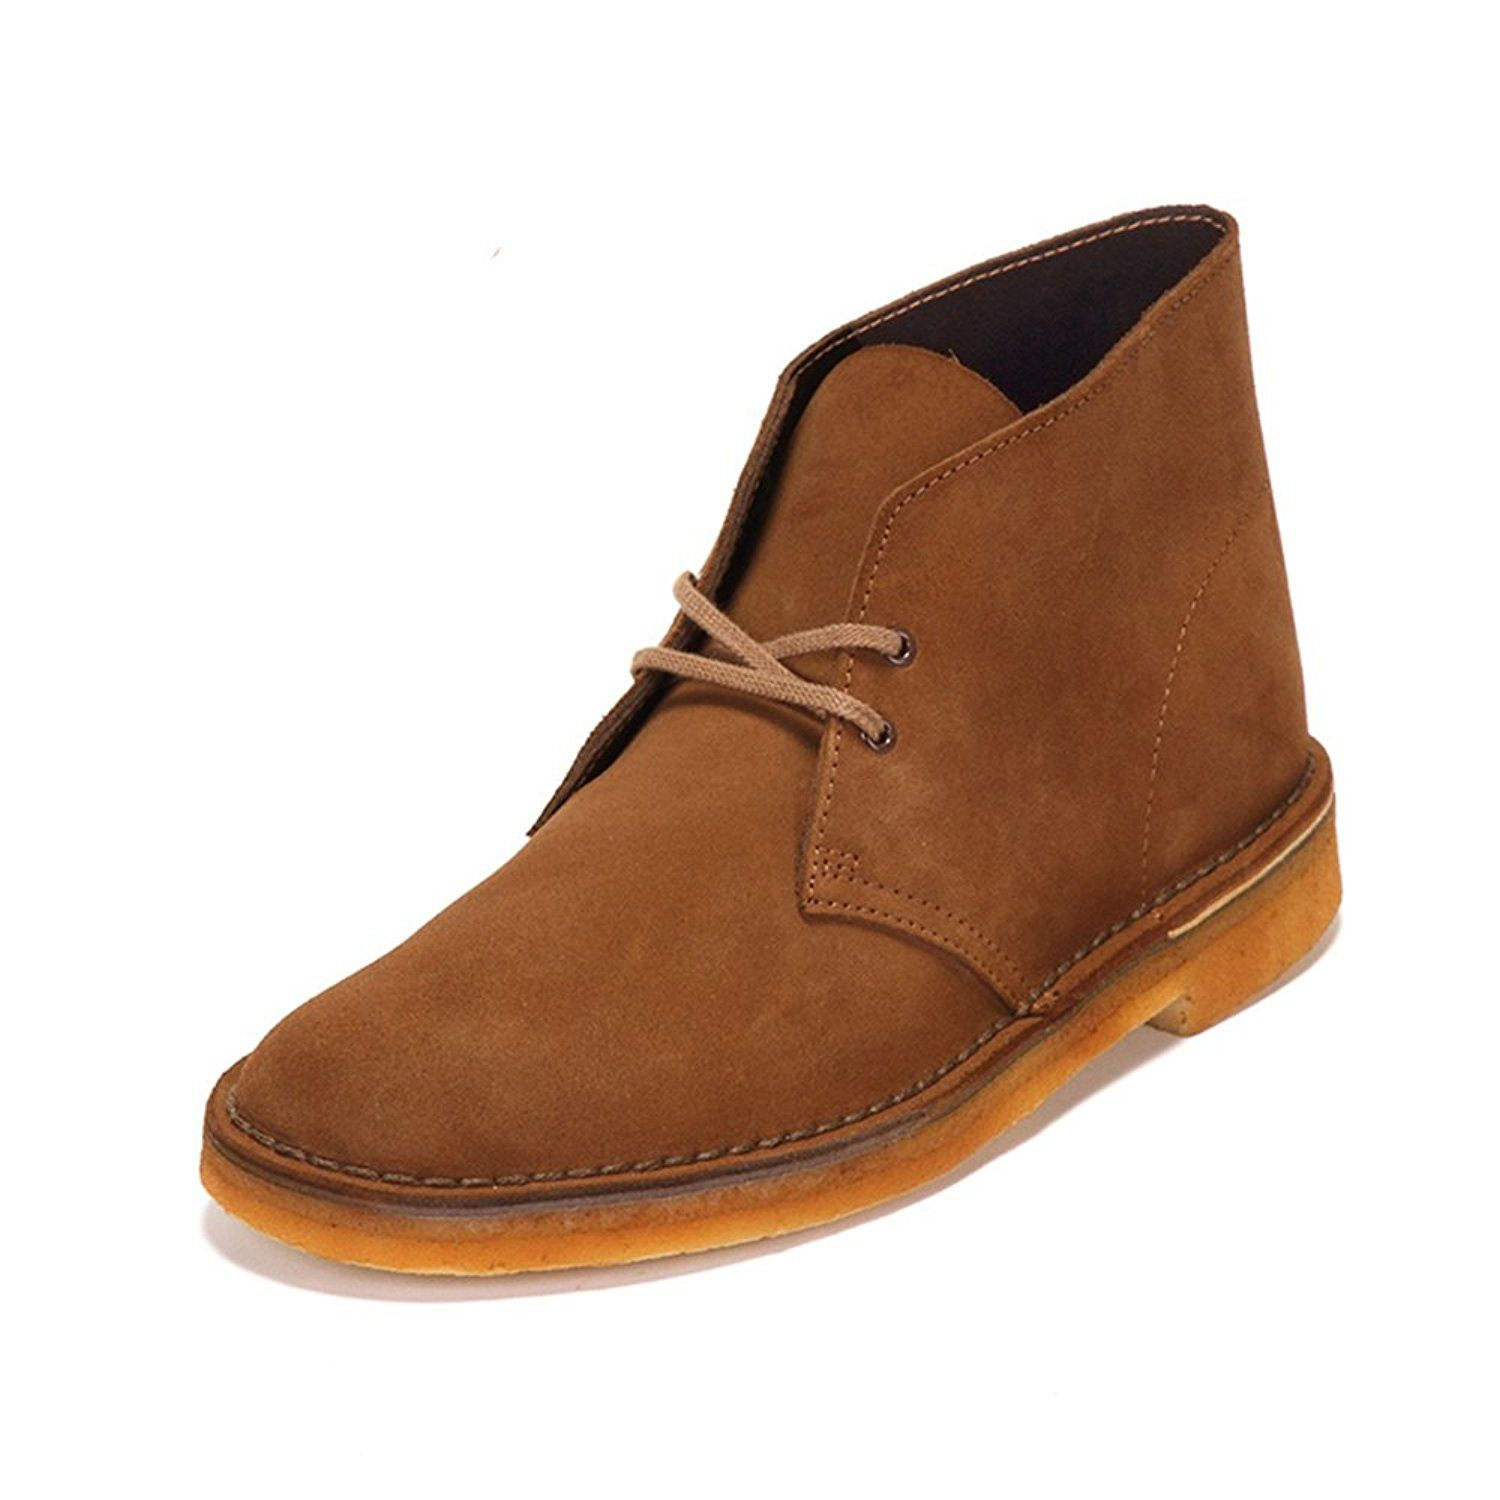 Desert Boot, Mens Derby Lace-up Clarks